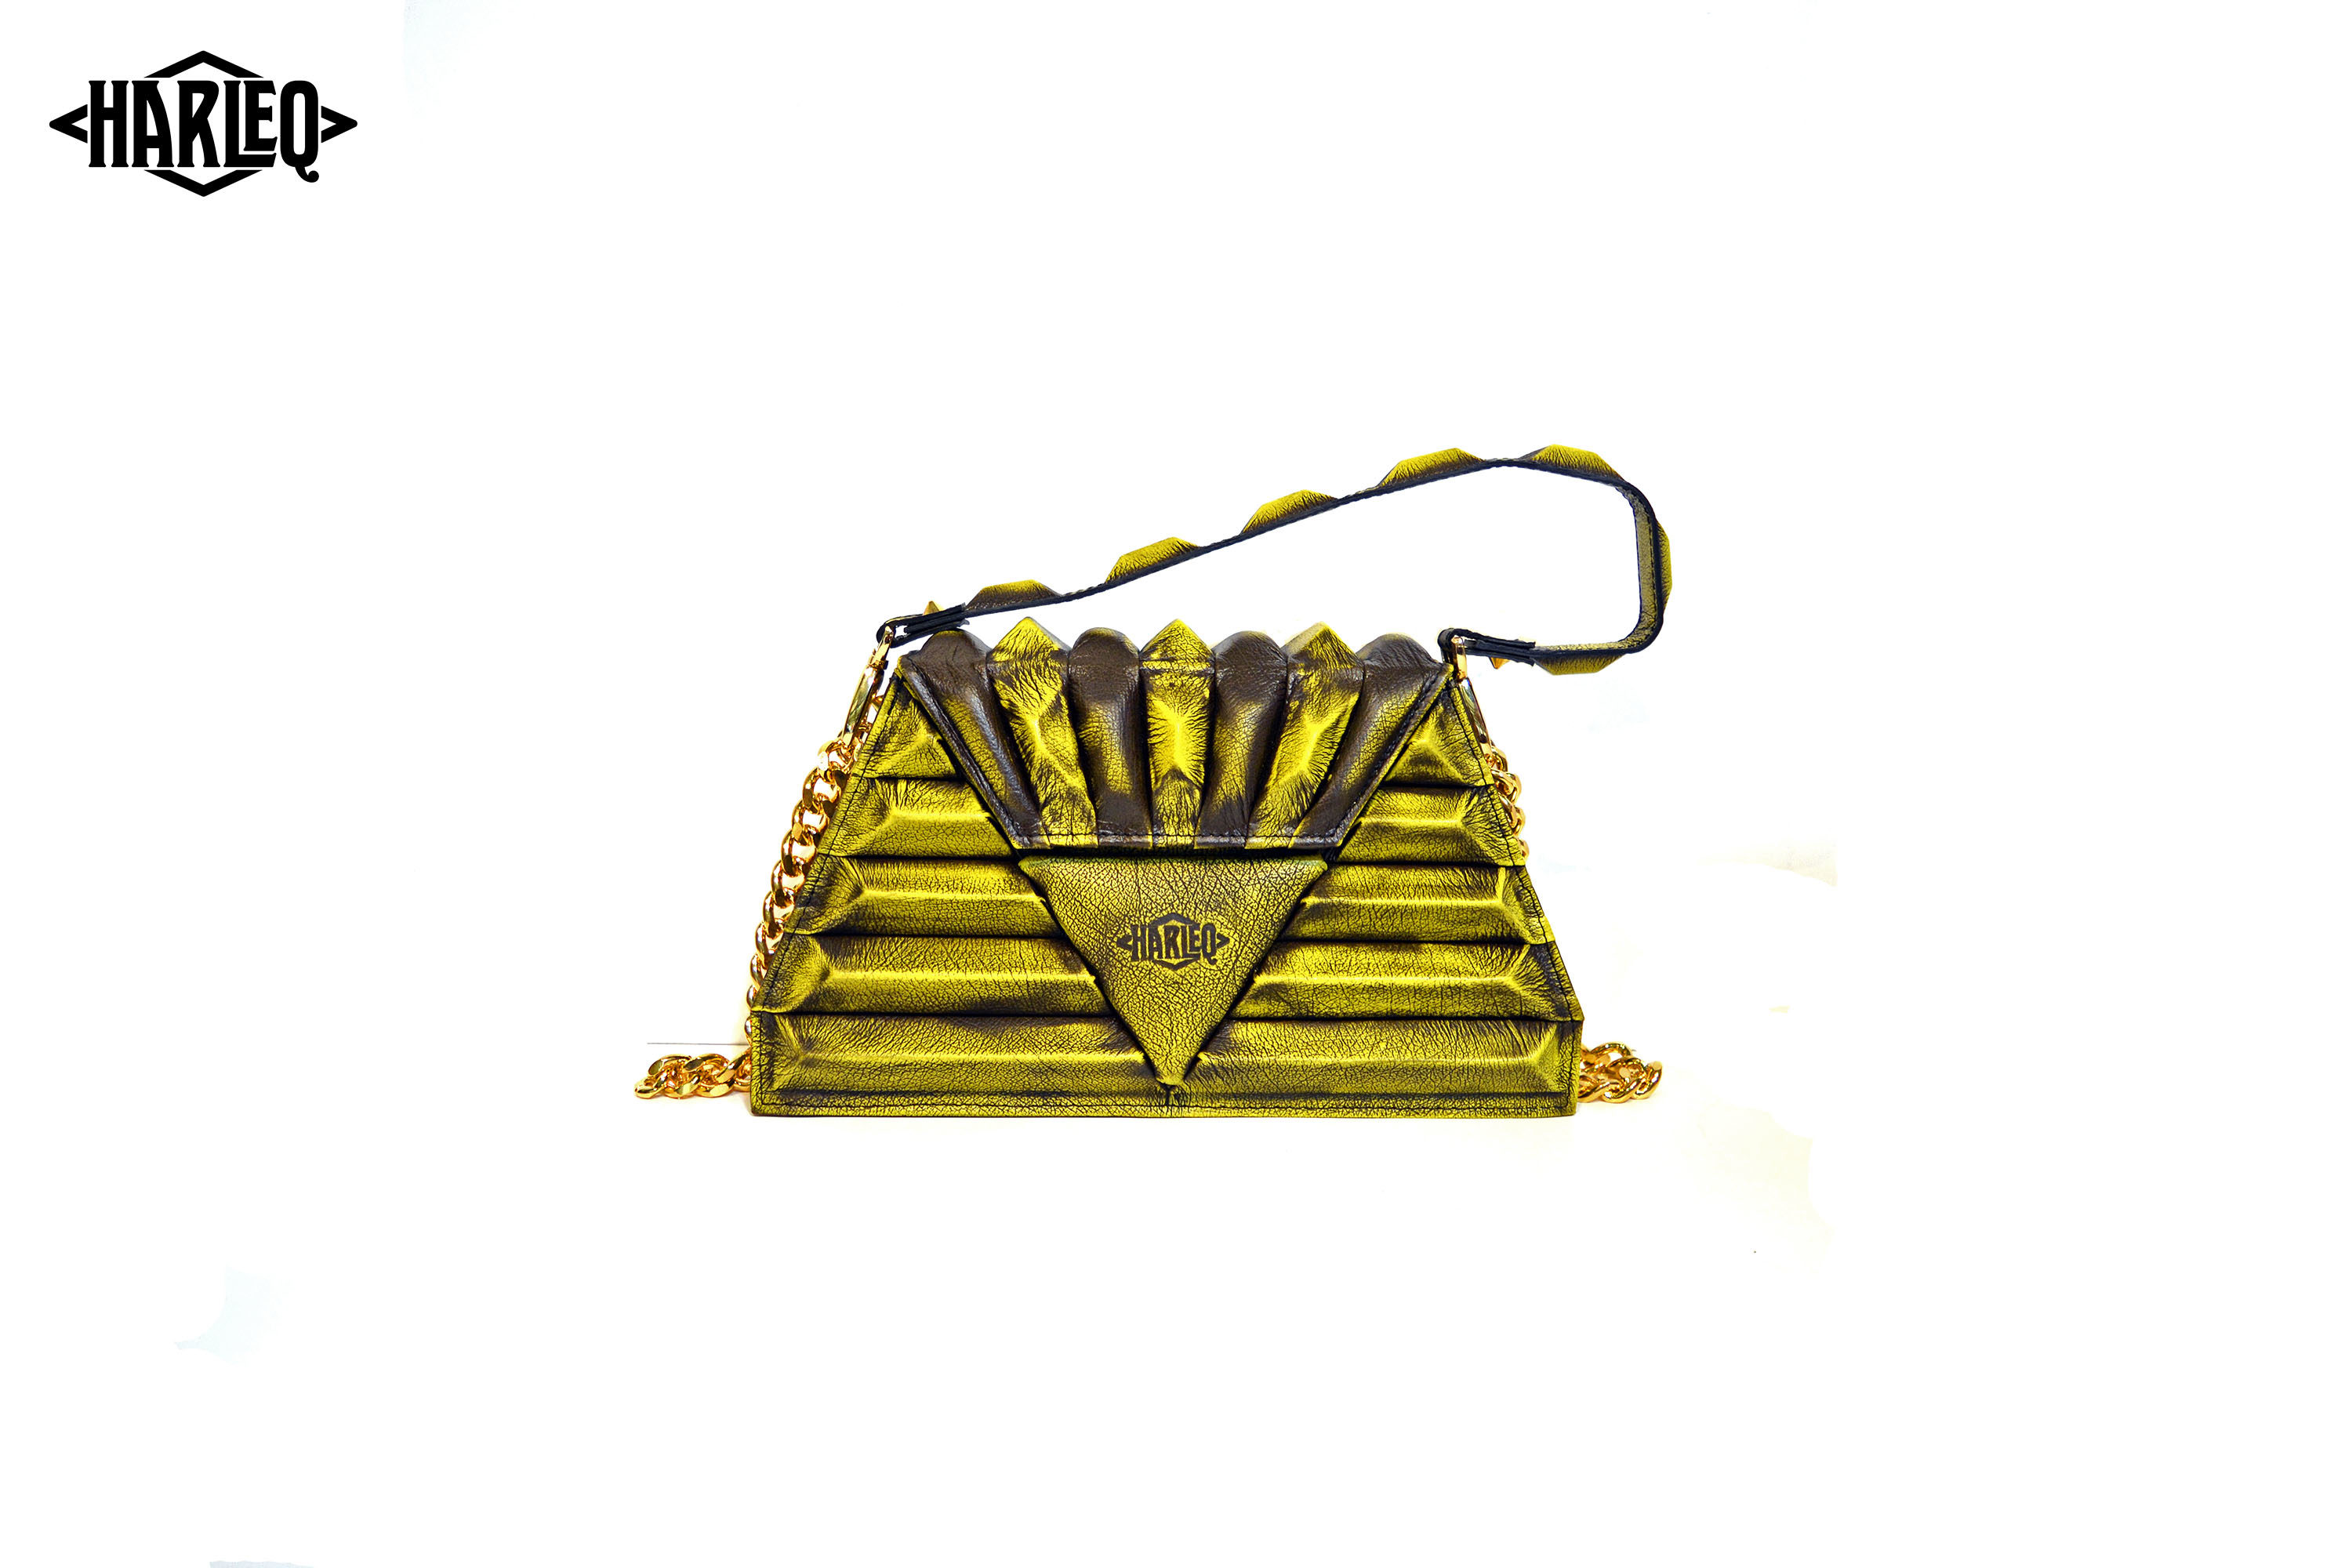 harleq-sphinx-pochette-yellow